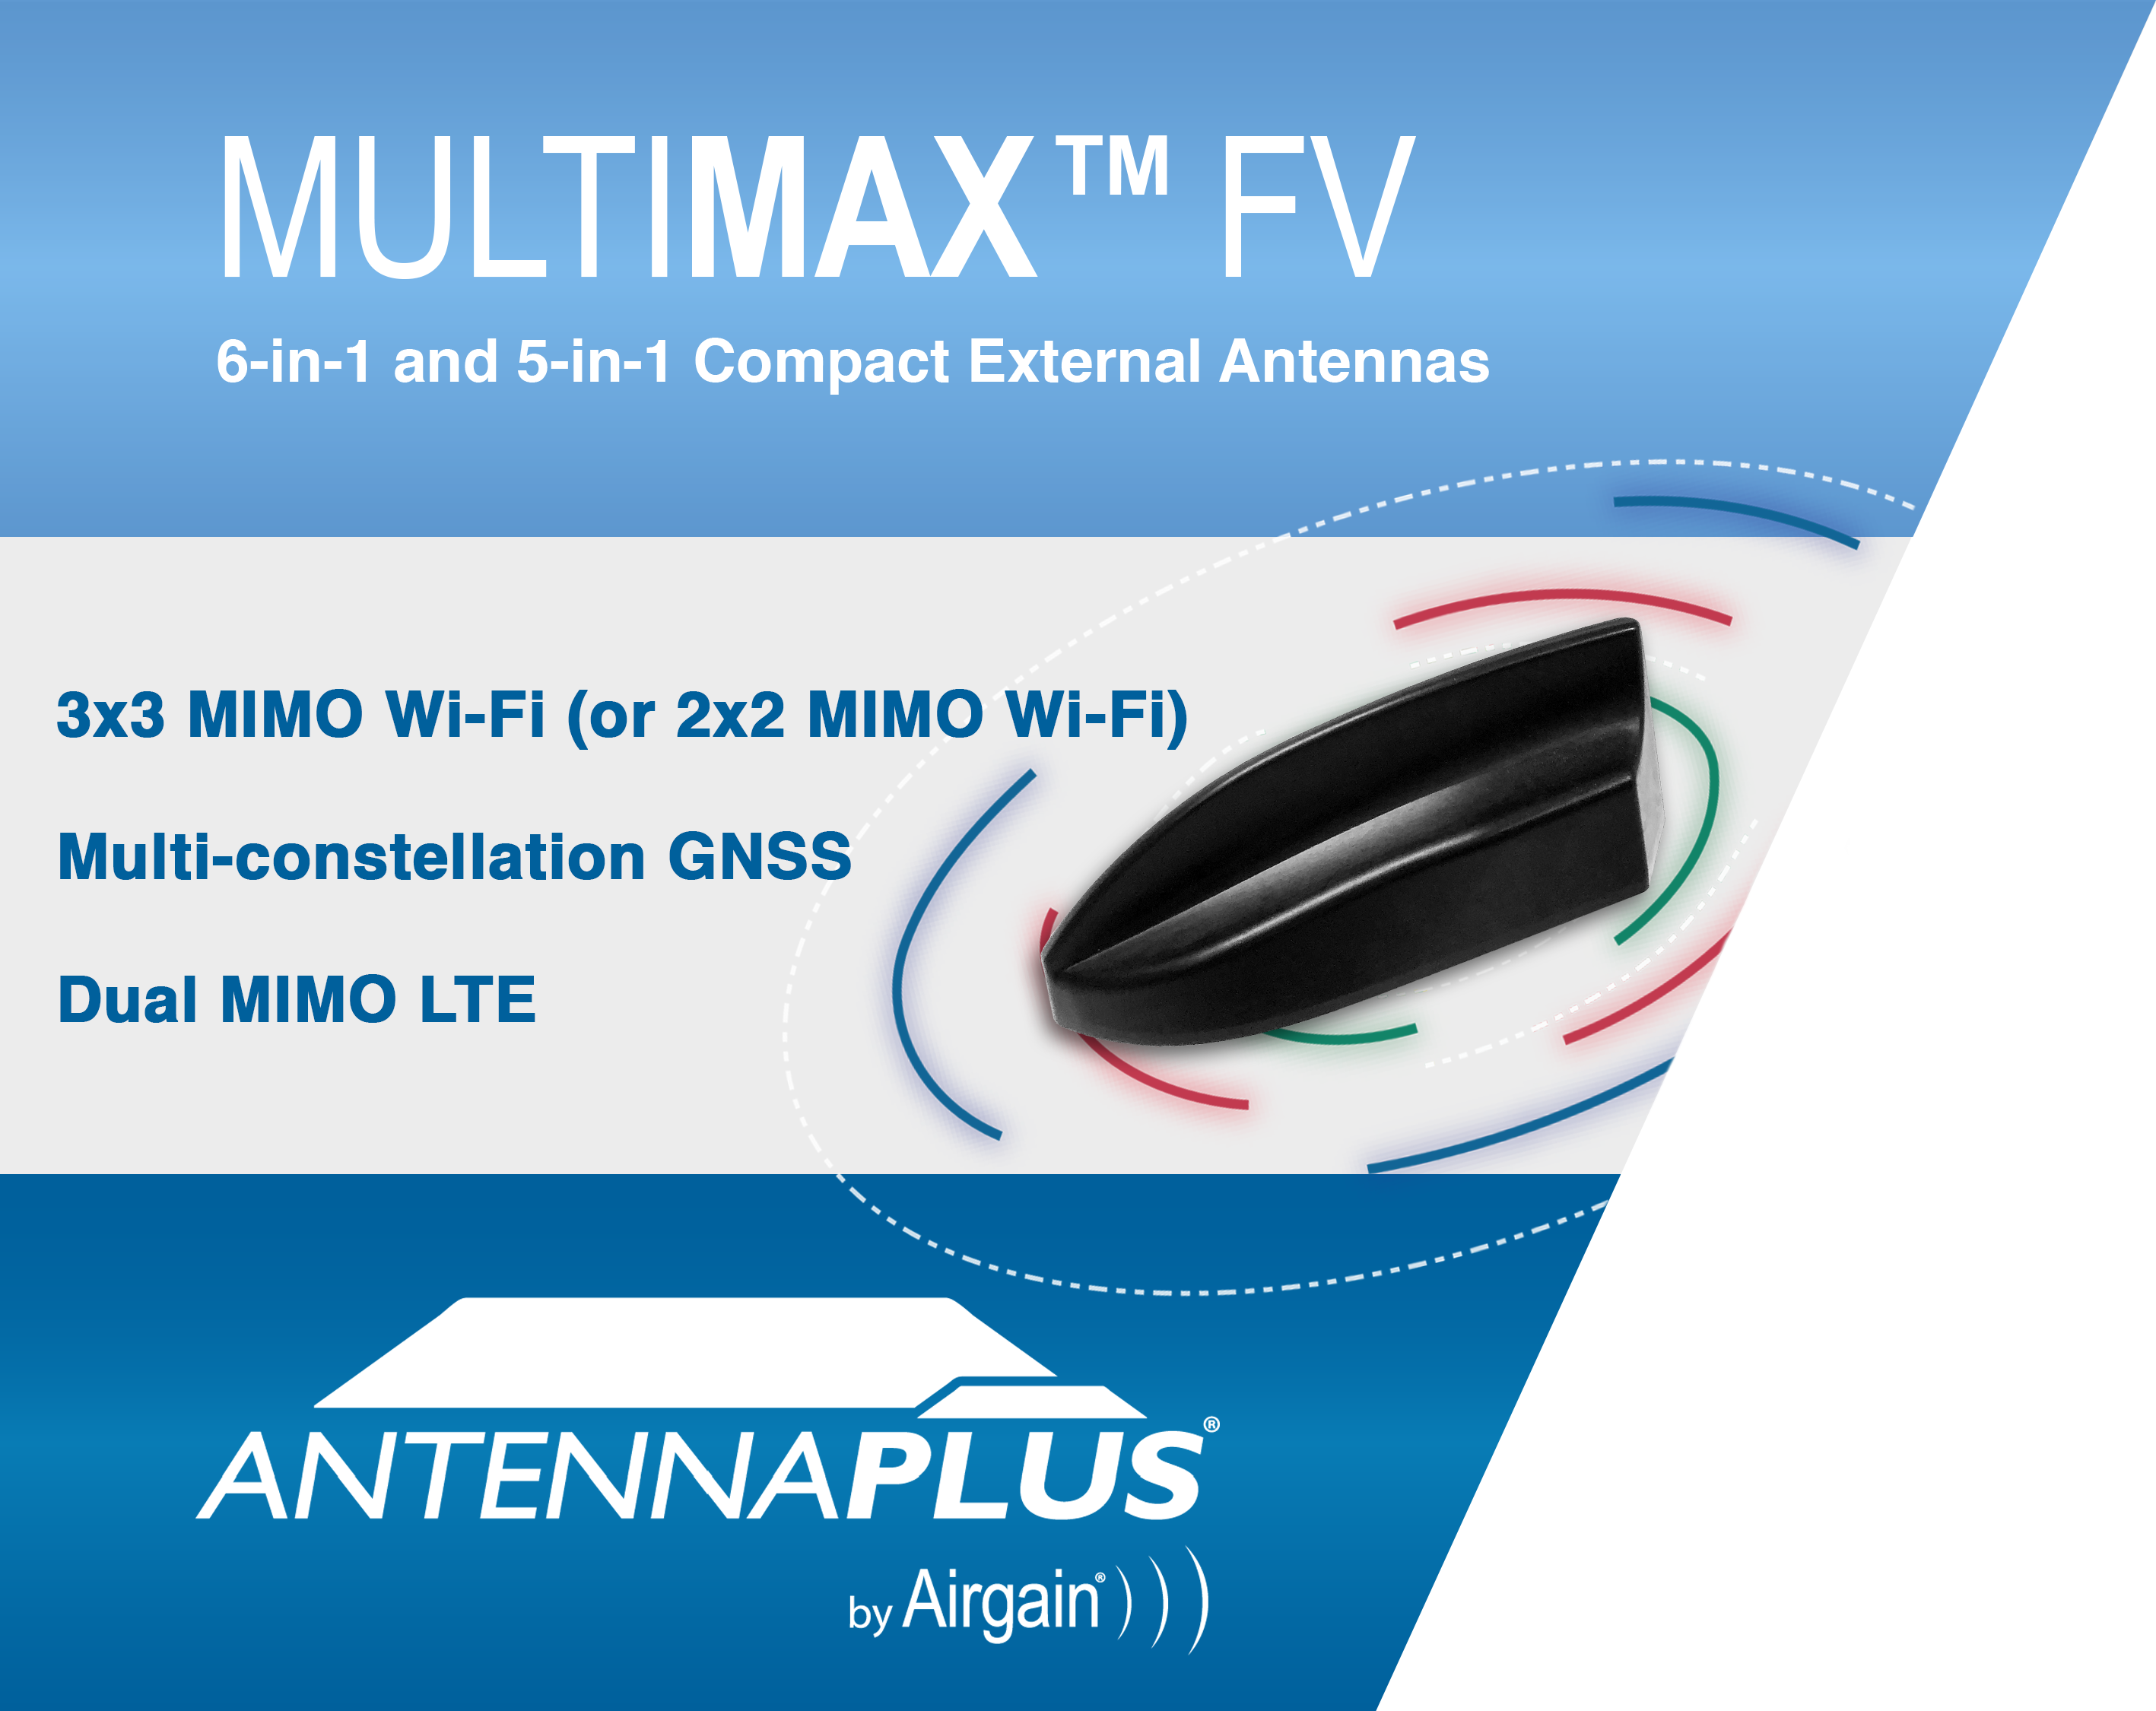 Airgain Announces new MULTIMAX FV 6-in-1 and 5-in-1 High Performance Antennas for Fleet Solutions (G ...